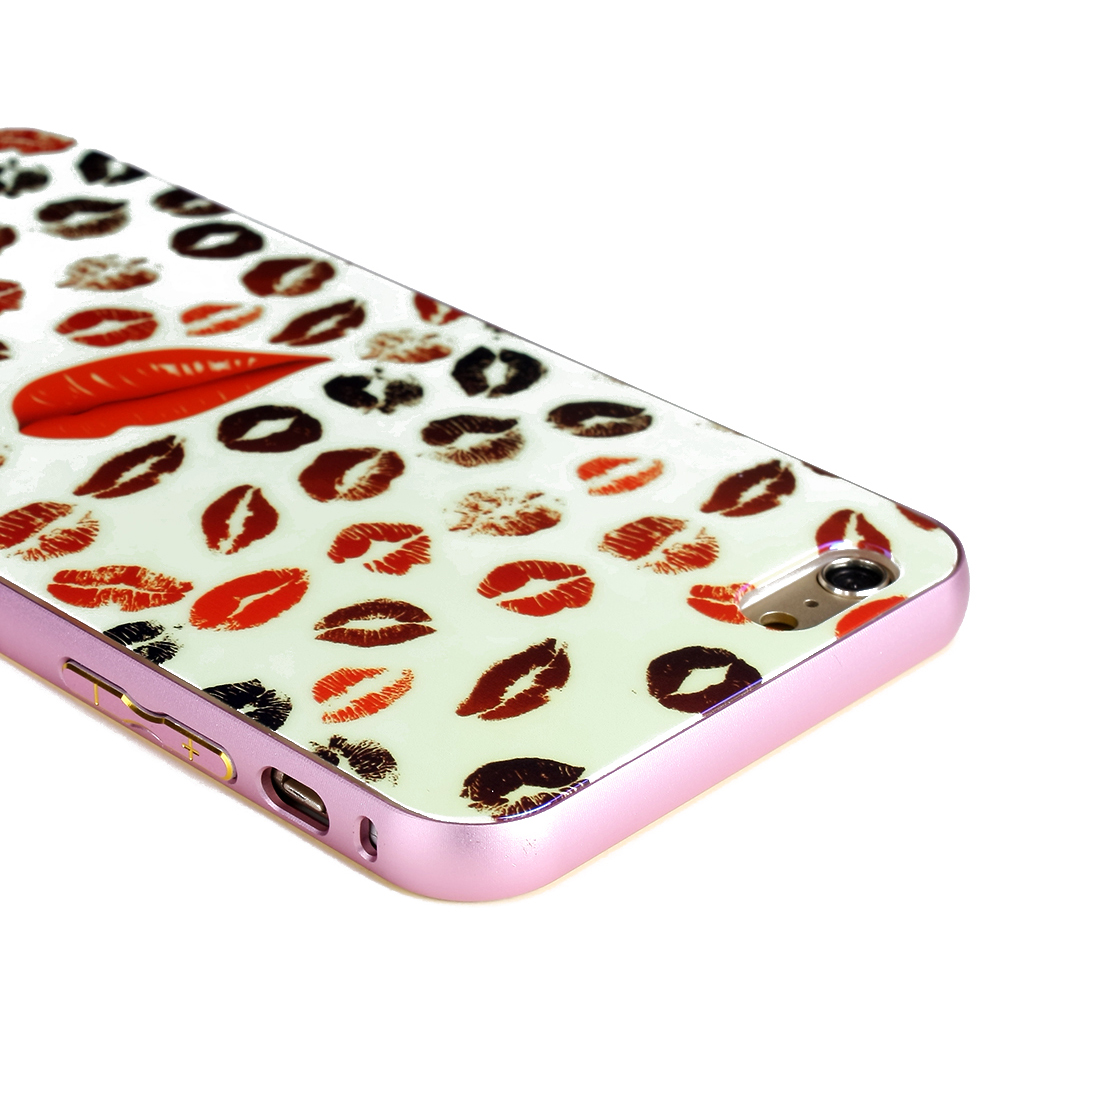 NEW Luxury Aluminum Ultra-thin Metal Case Cover for iPhone 6 Plus Lipstick